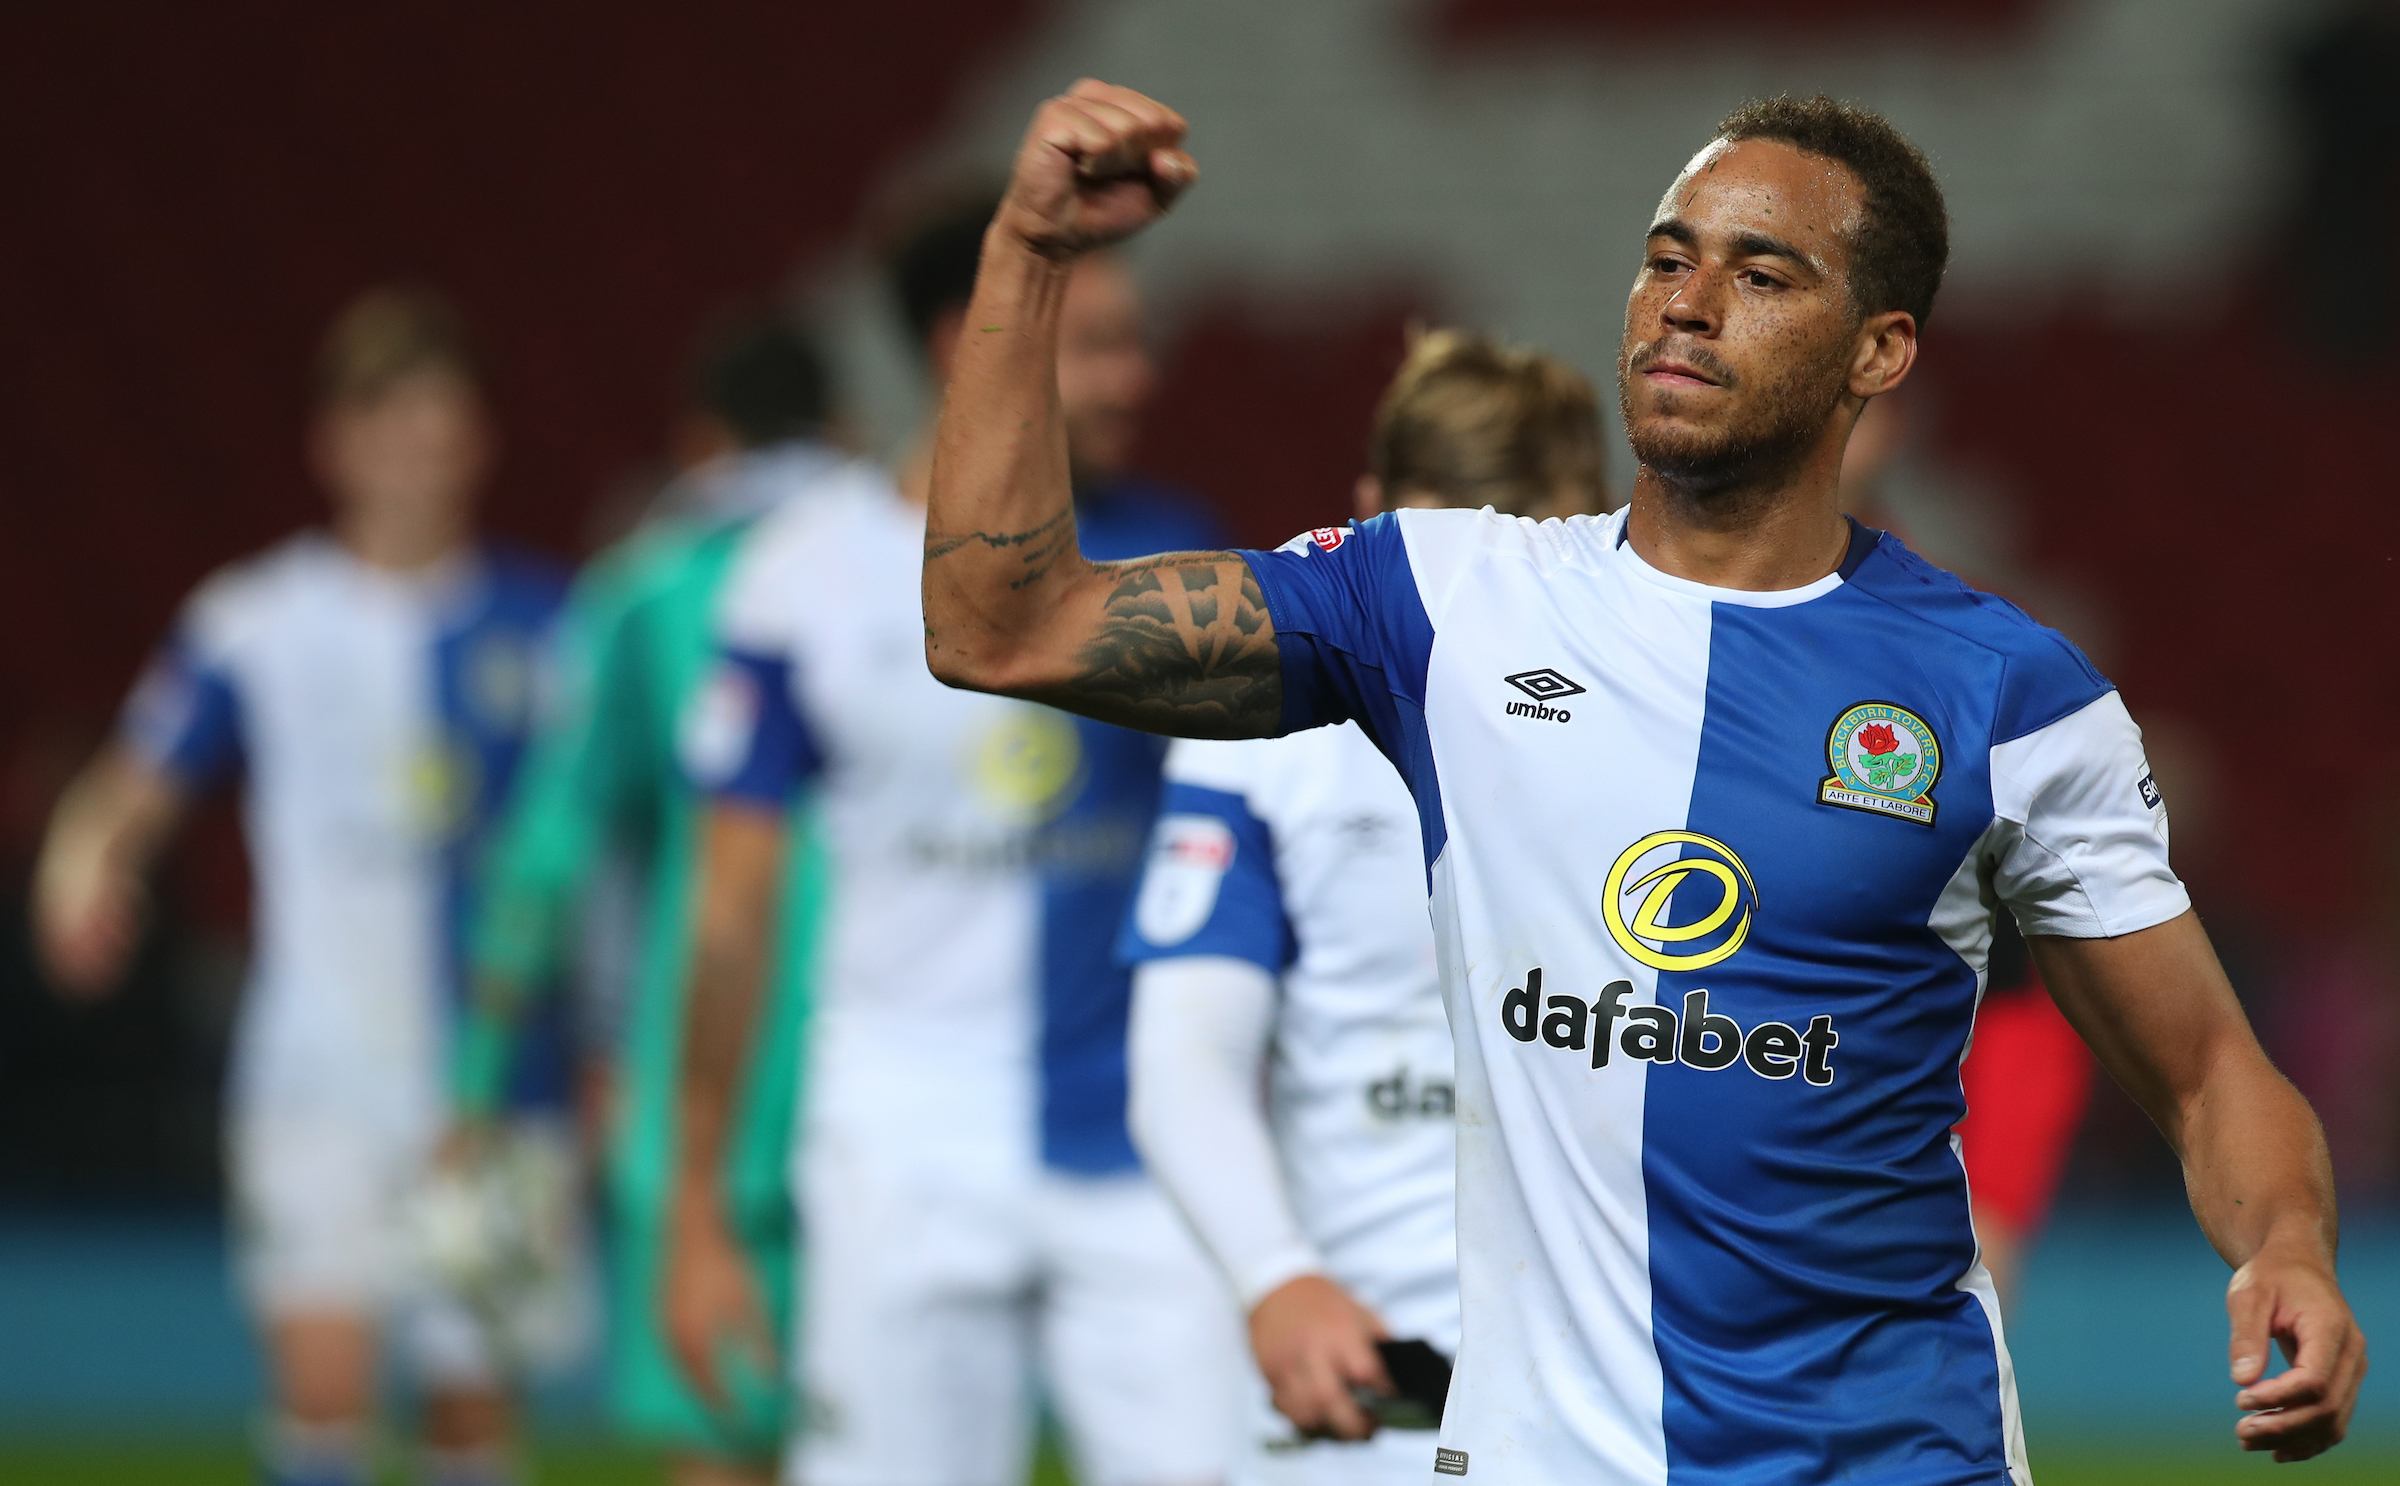 Elliott Bennett signed a contract extension at Rovers which will run to the summer of 2020